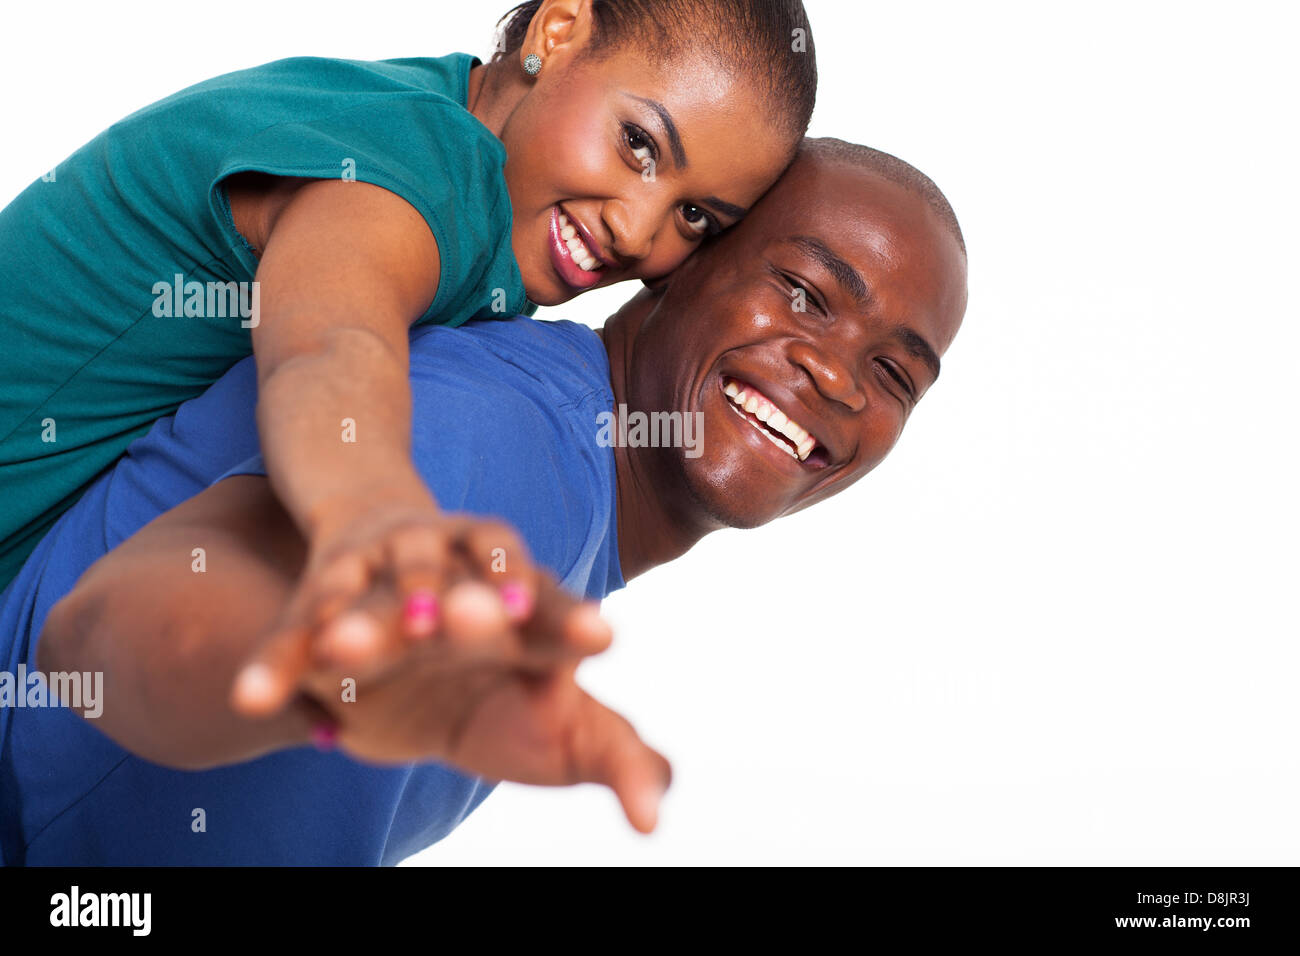 happy young african woman enjoying piggyback ride on boyfriends back with their hands outstretched - Stock Image